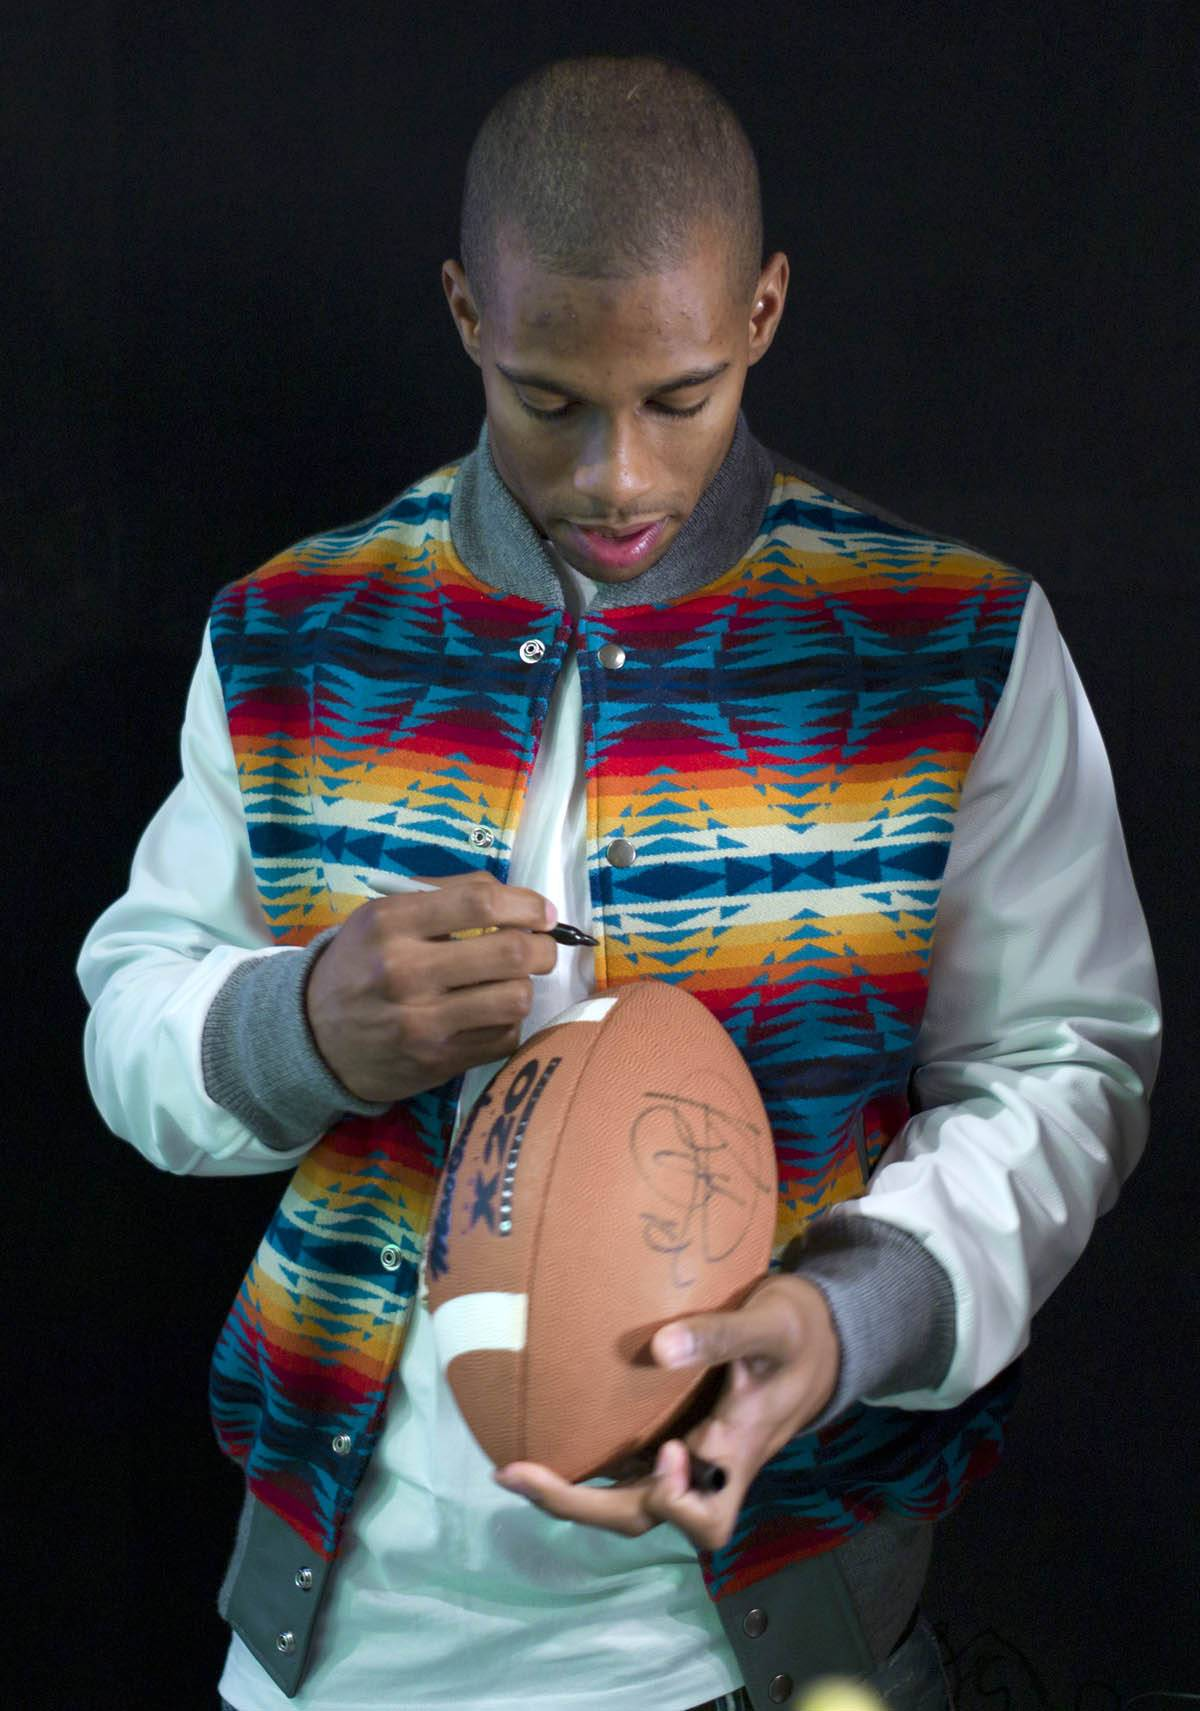 Sign This, Please - Victor Cruz signs an autograph at 106 & Park, January 26, 2012. (Photo: John Ricard / BET)